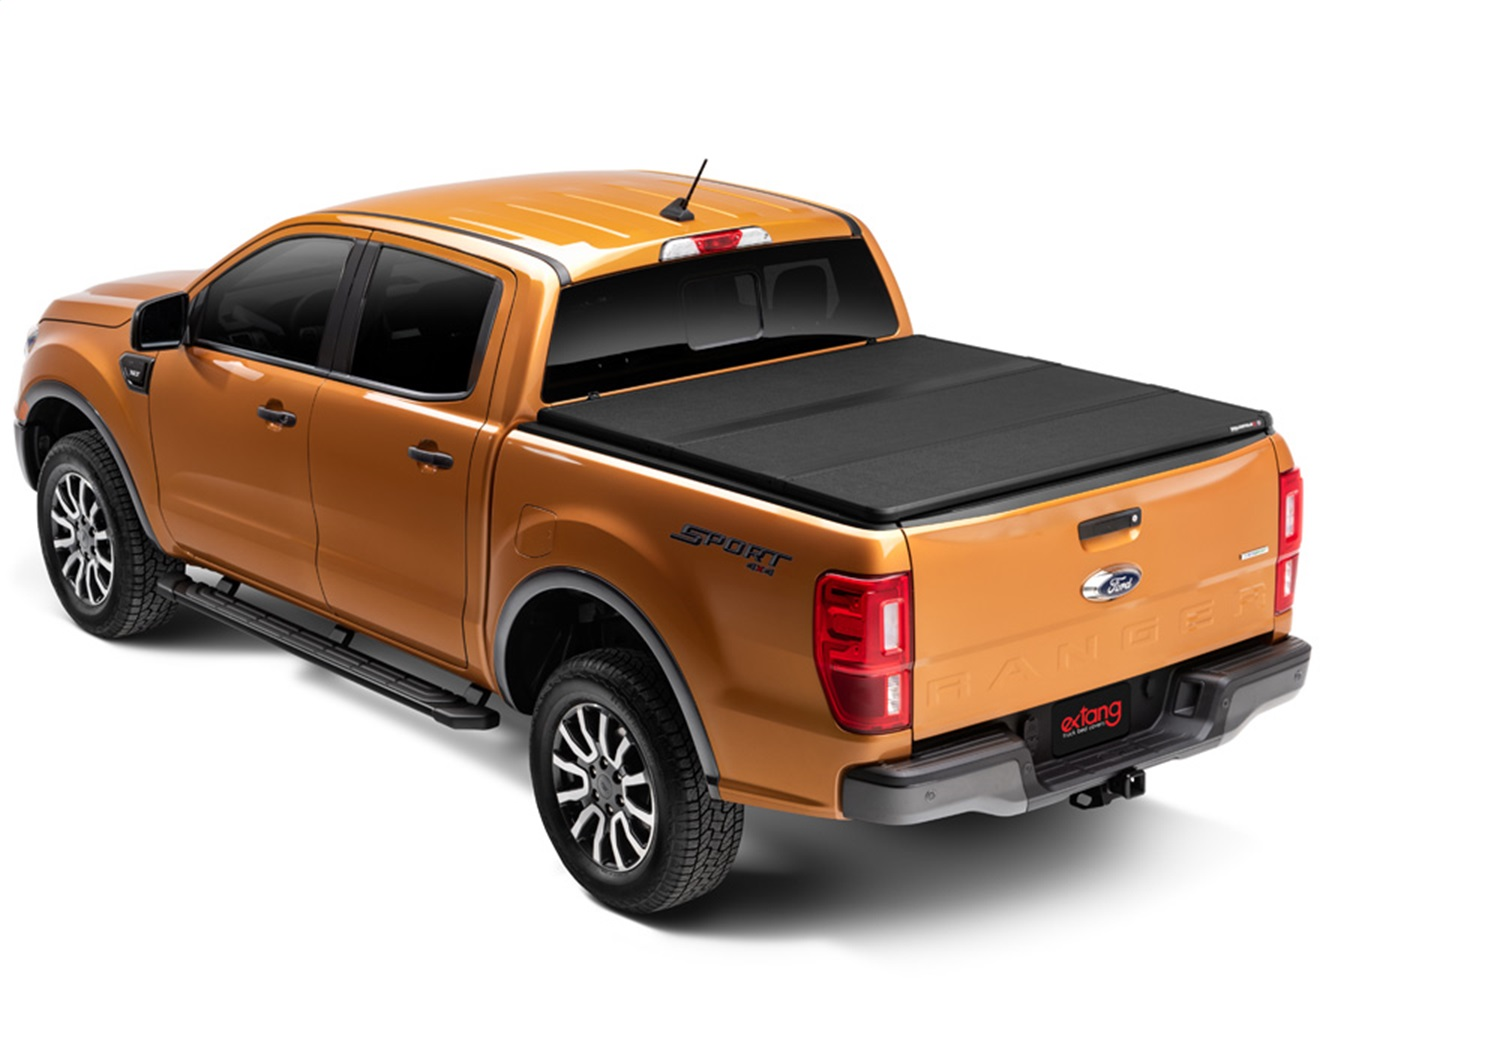 Extang 83636 Solid Fold 2.0 Tonneau Cover Fits 19-21 Ranger